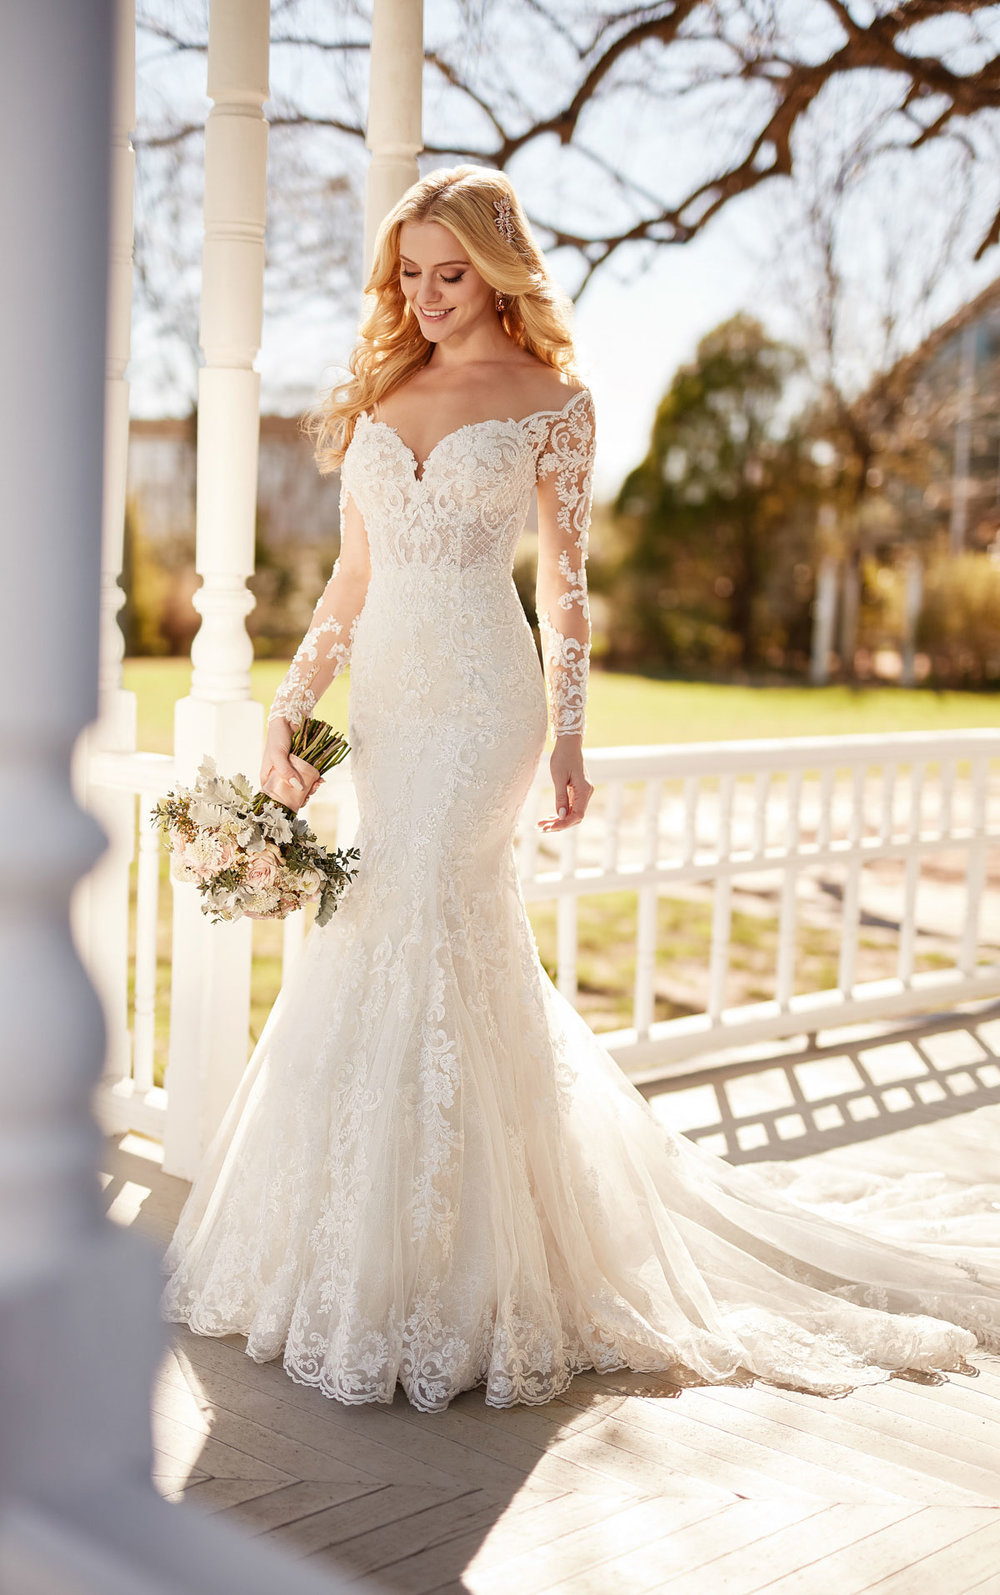 Illusion lace long sleeved wedding gown